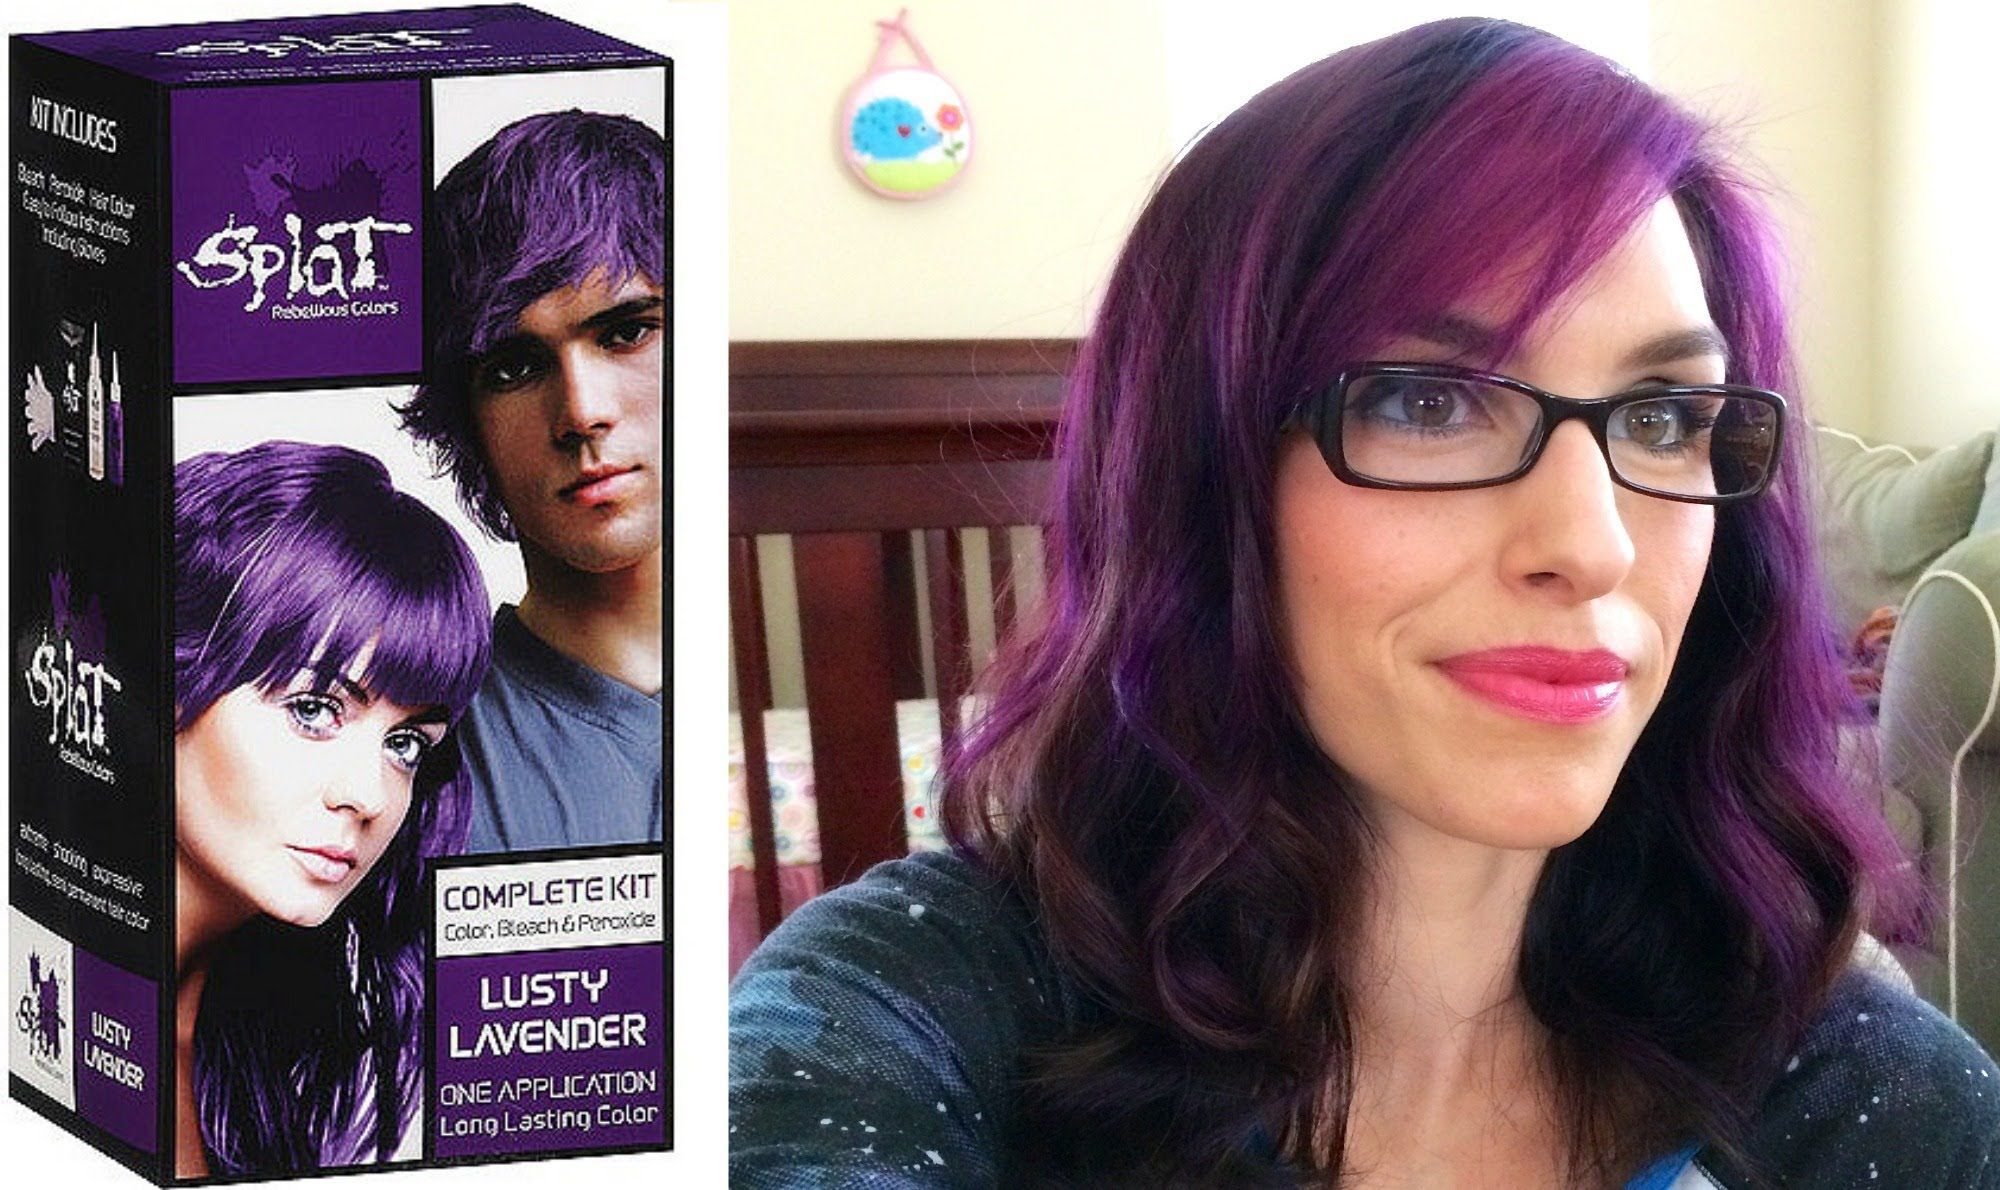 Splat Hair Dye Review And Demo Lusty Lavendar Defiantly Wouldn T Do It All Over I M Not That Brave Lol Splat Hair Dye Homemade Hair Color Scene Hair Colors